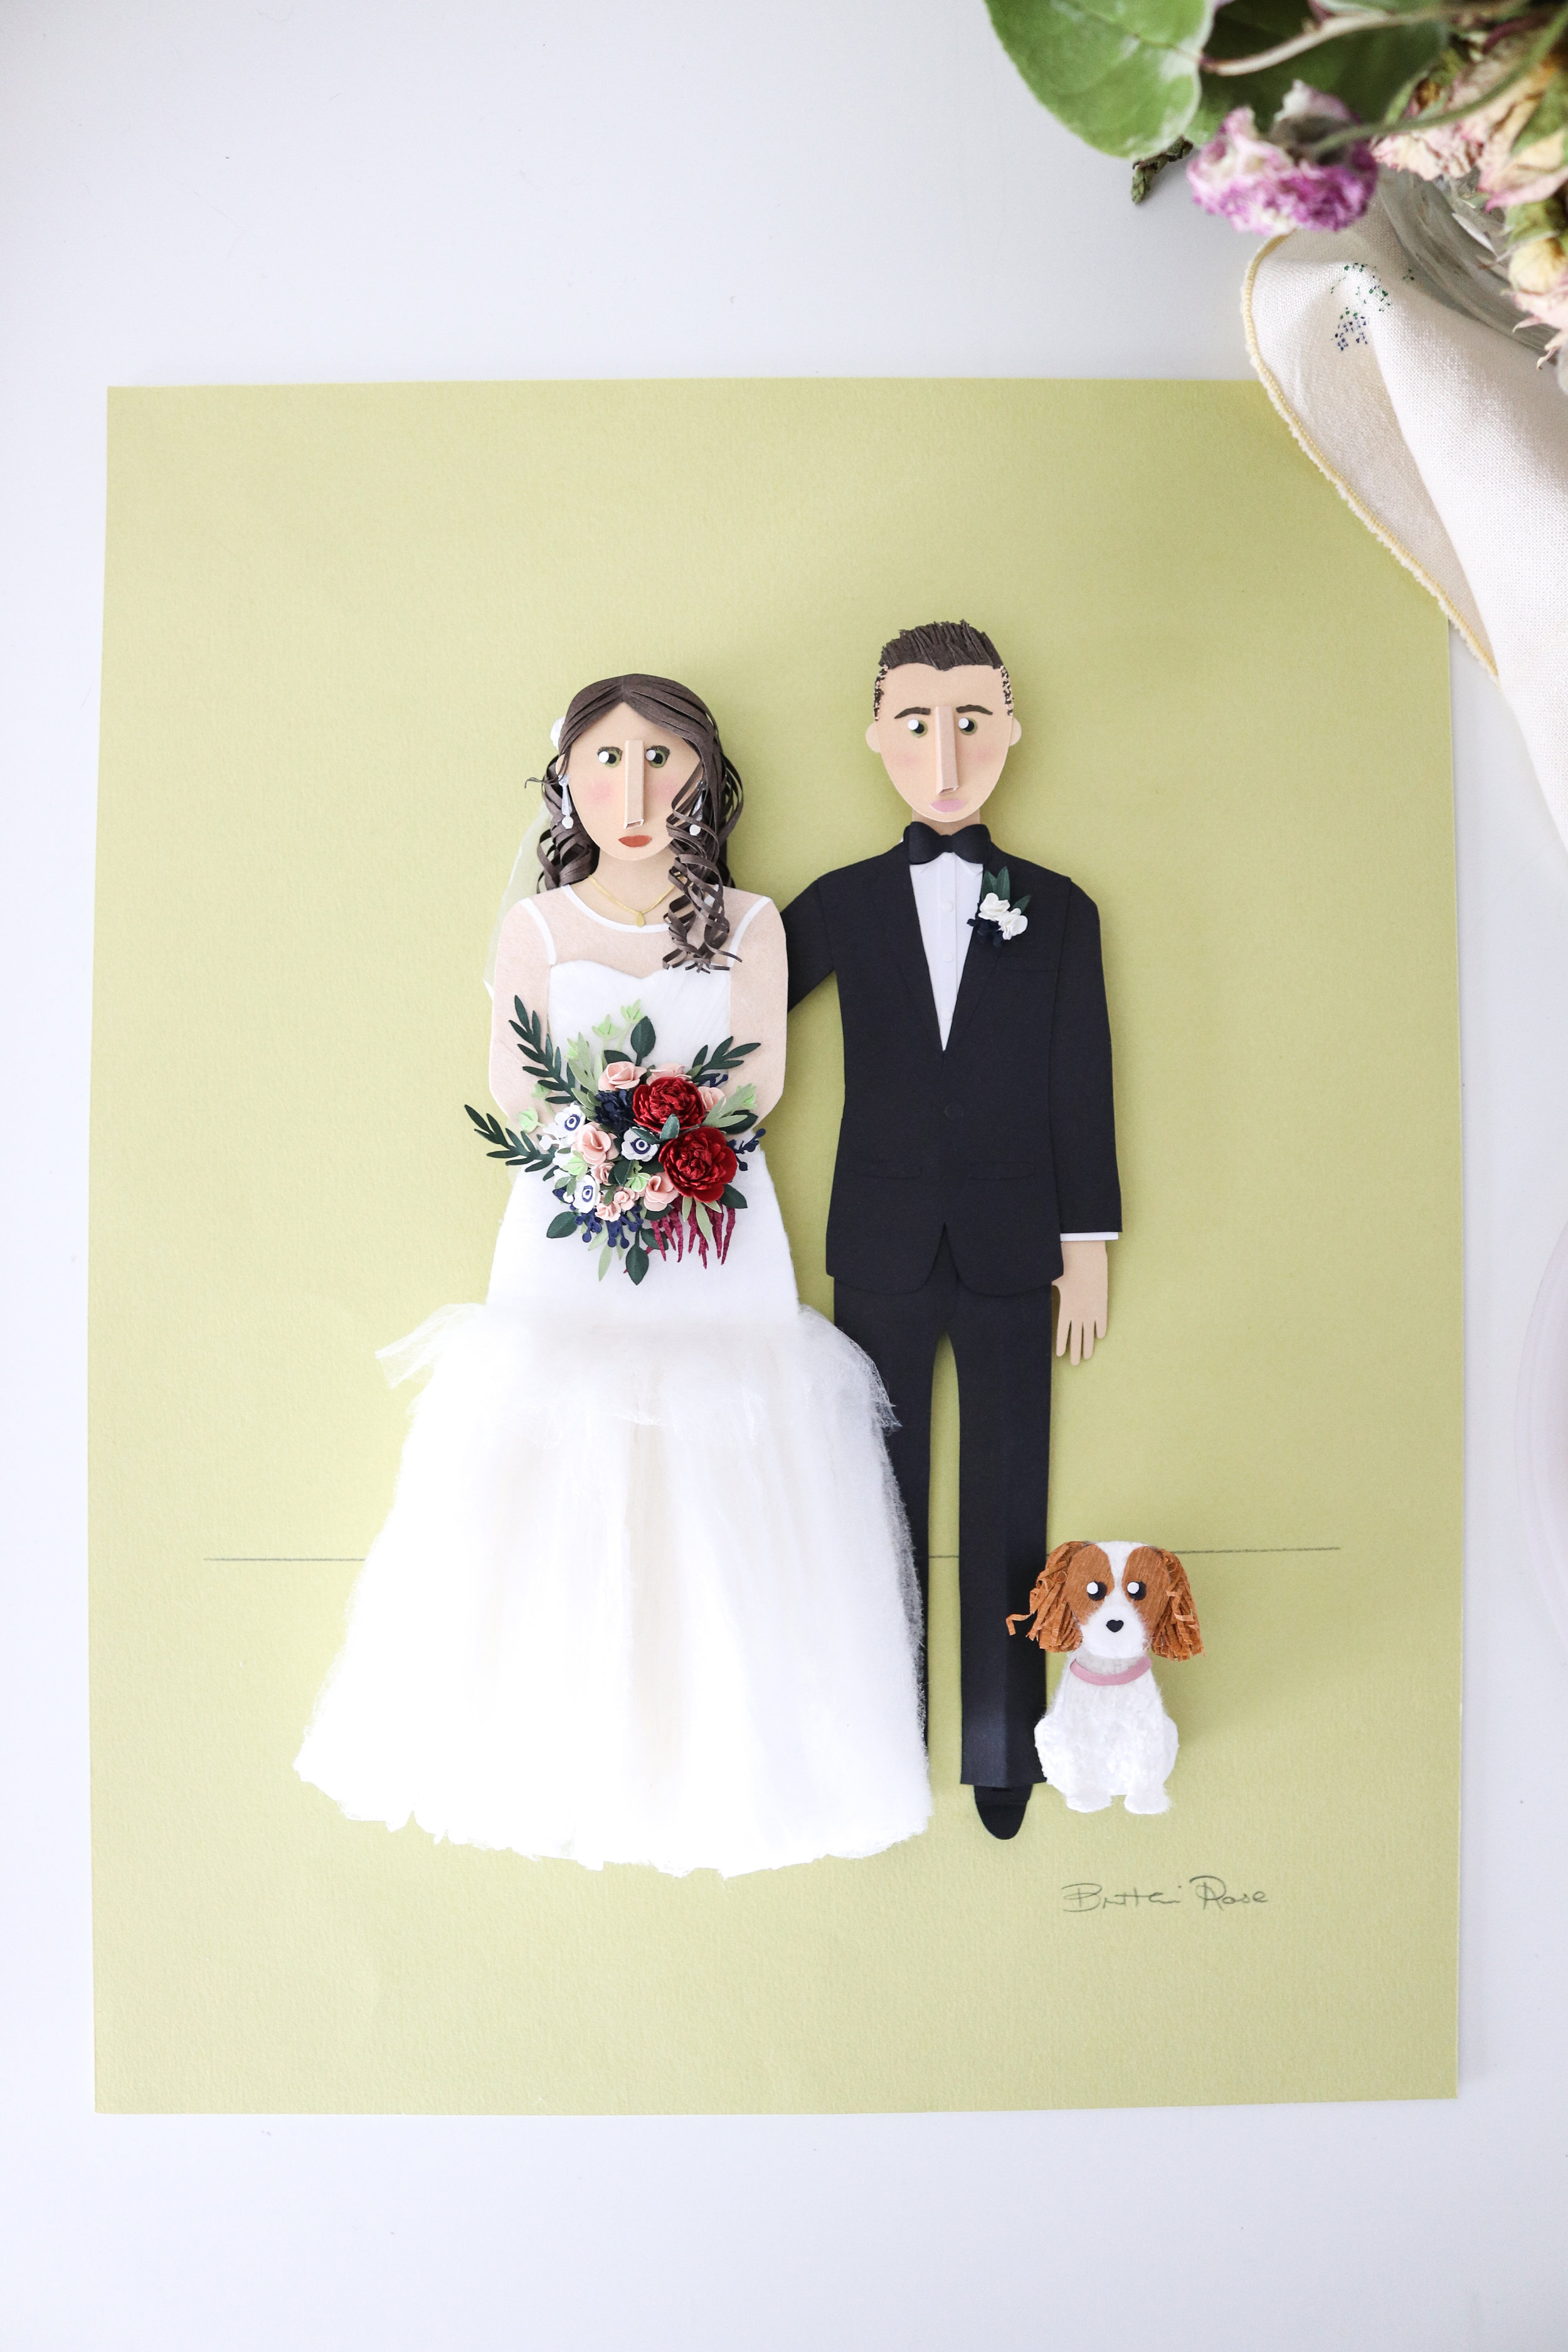 What to get for your wedding anniversary